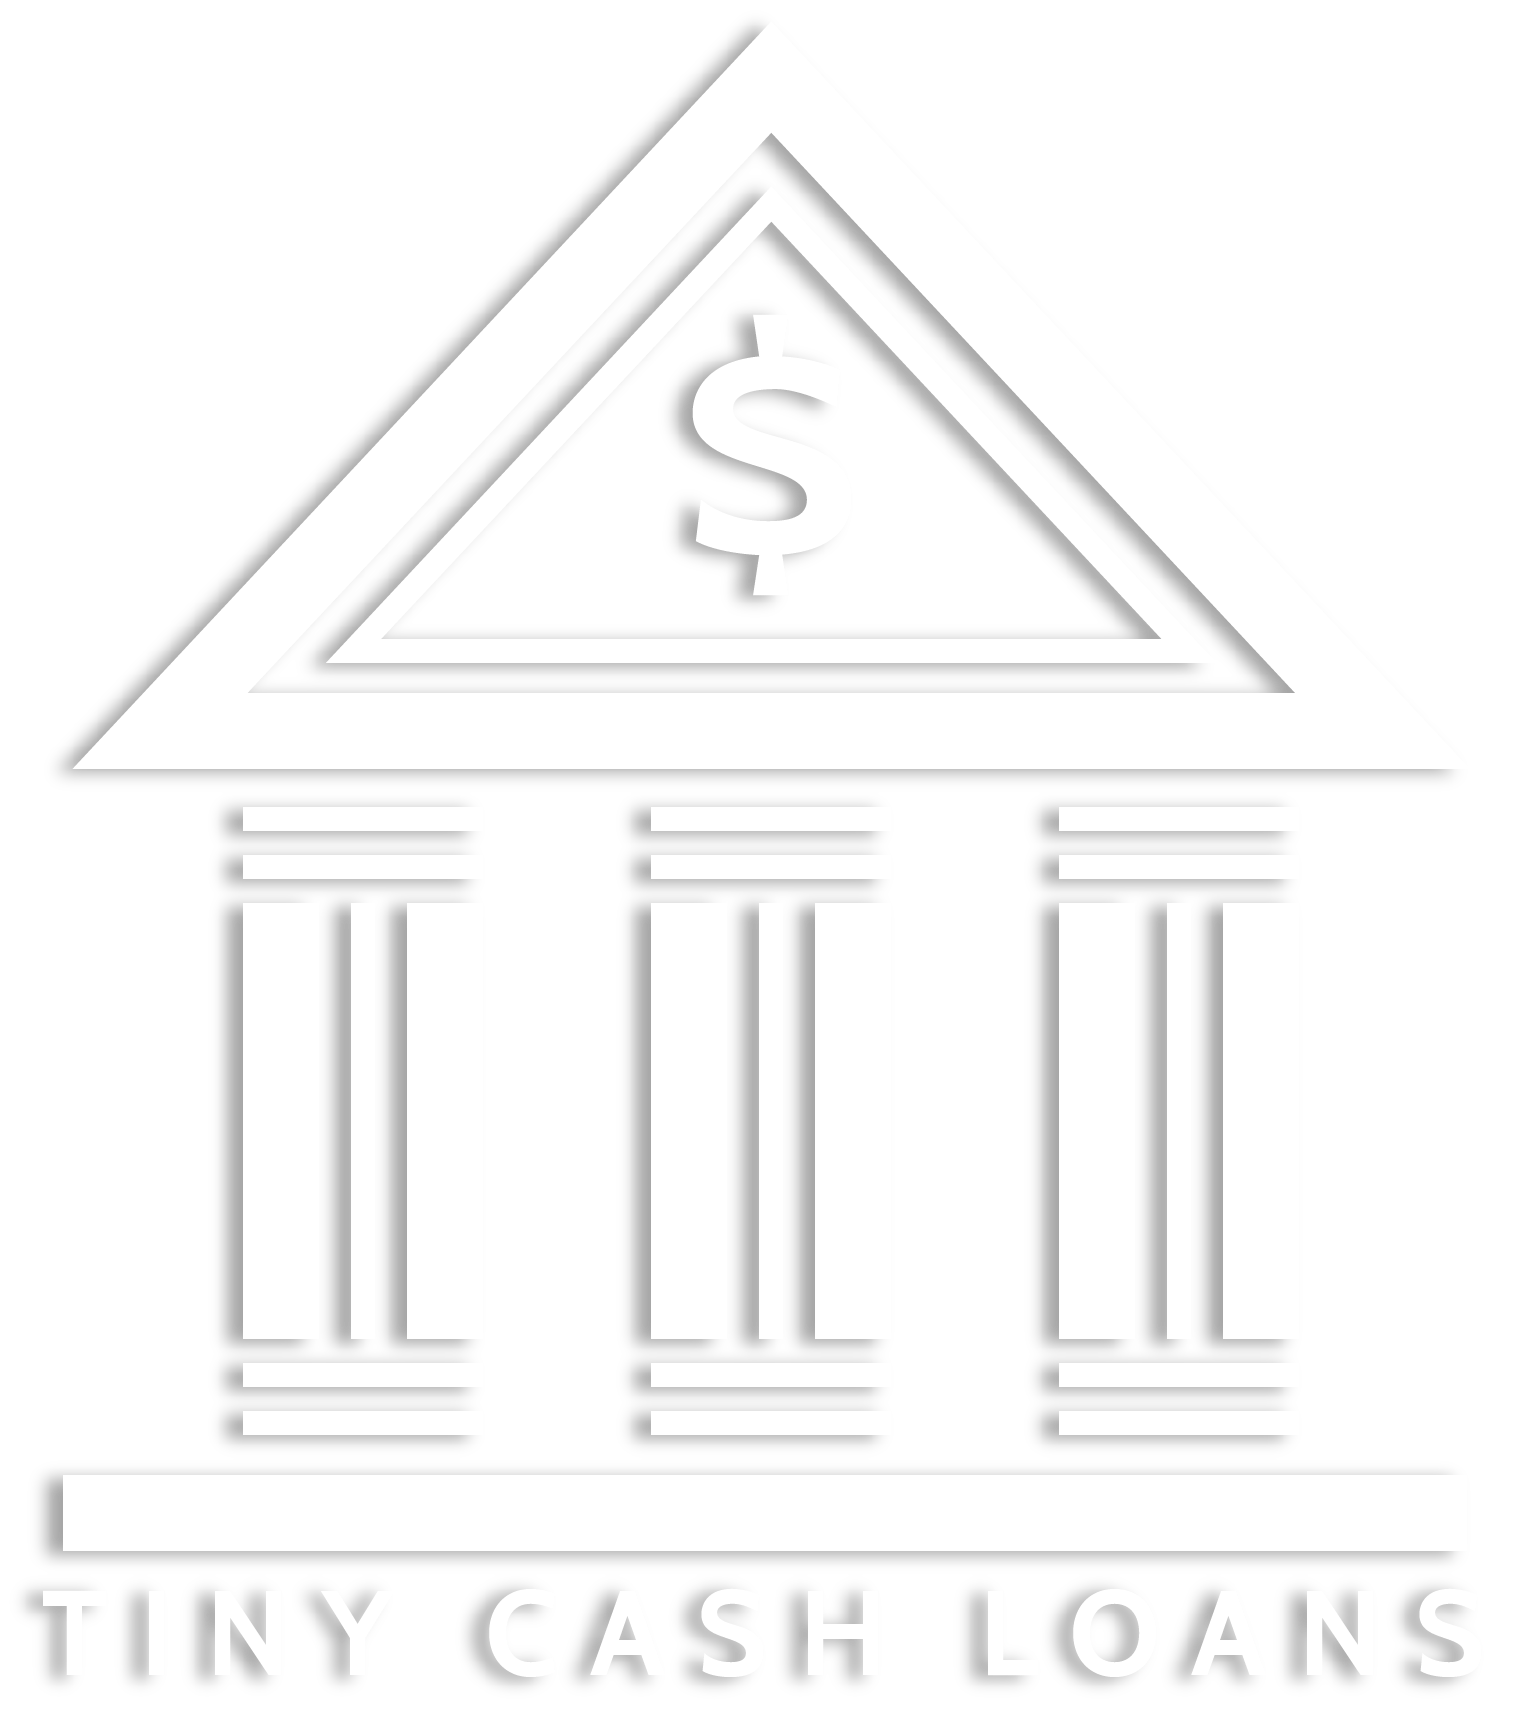 Payday loans in Cottonwood Hts, UT